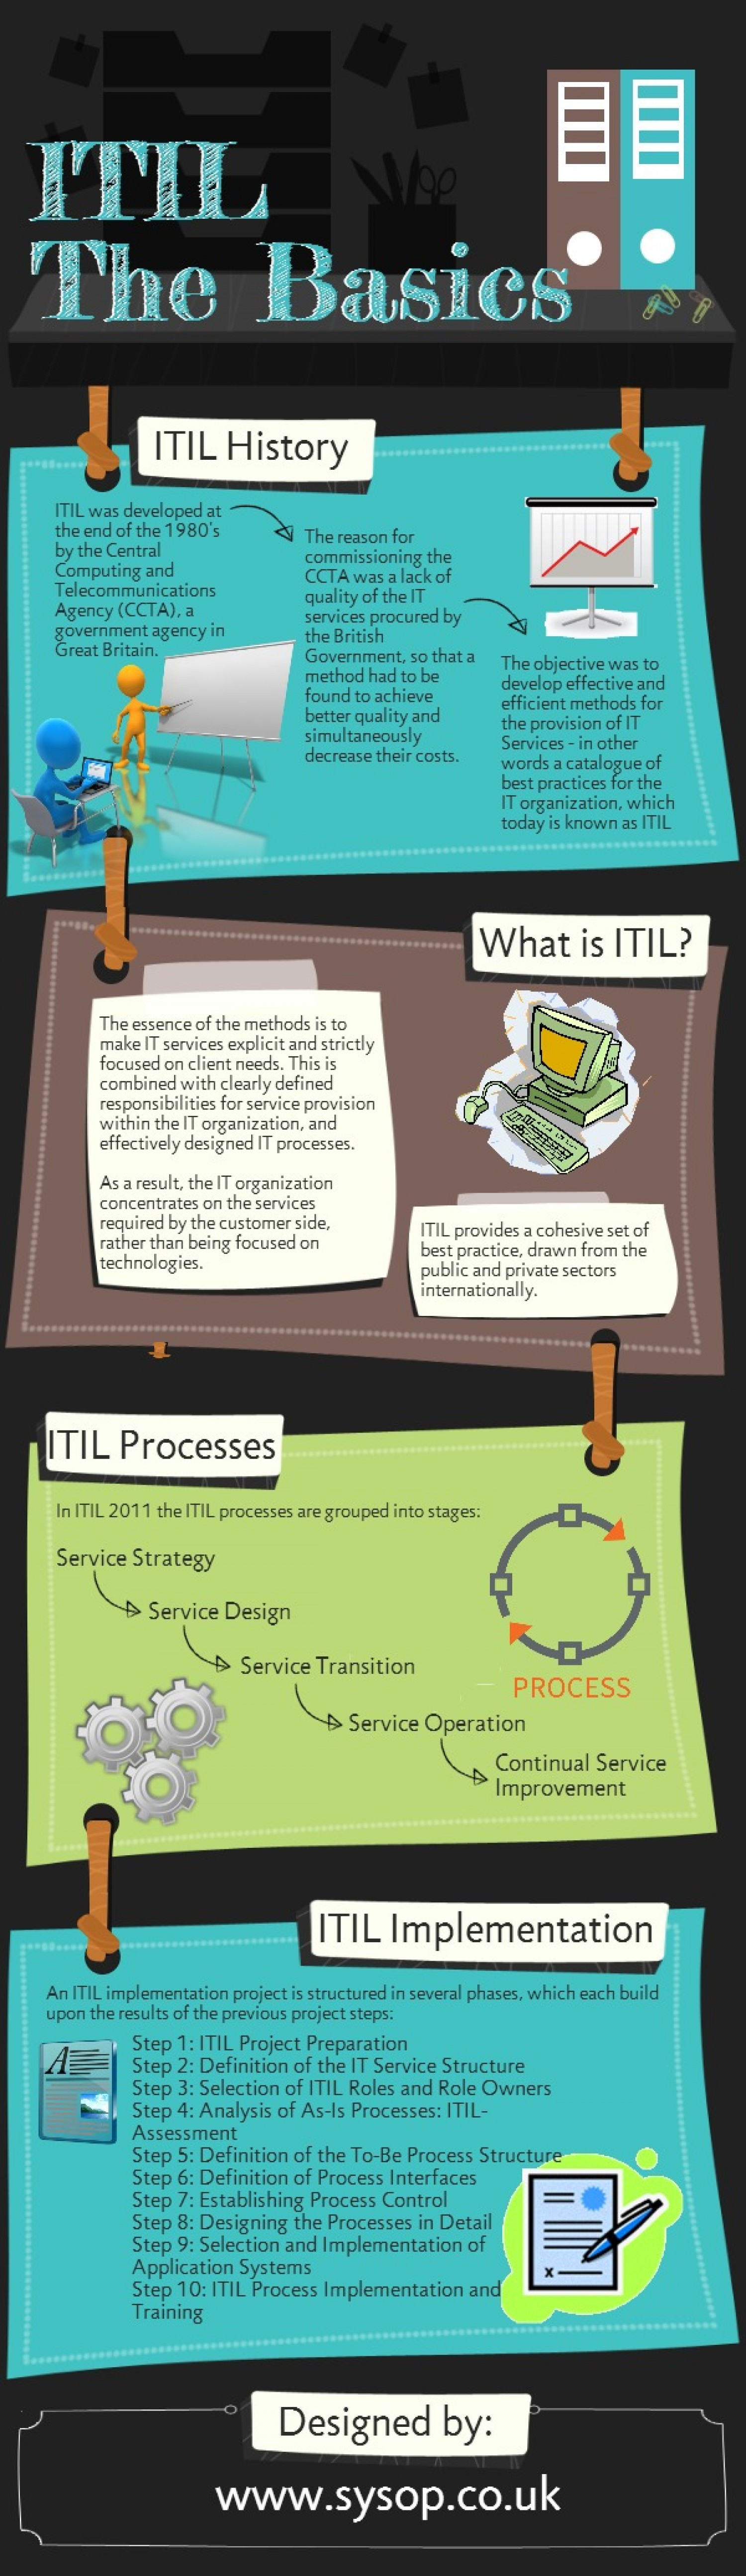 Itil basics from sysop it strategy pinterest project management 1betcityfo Choice Image